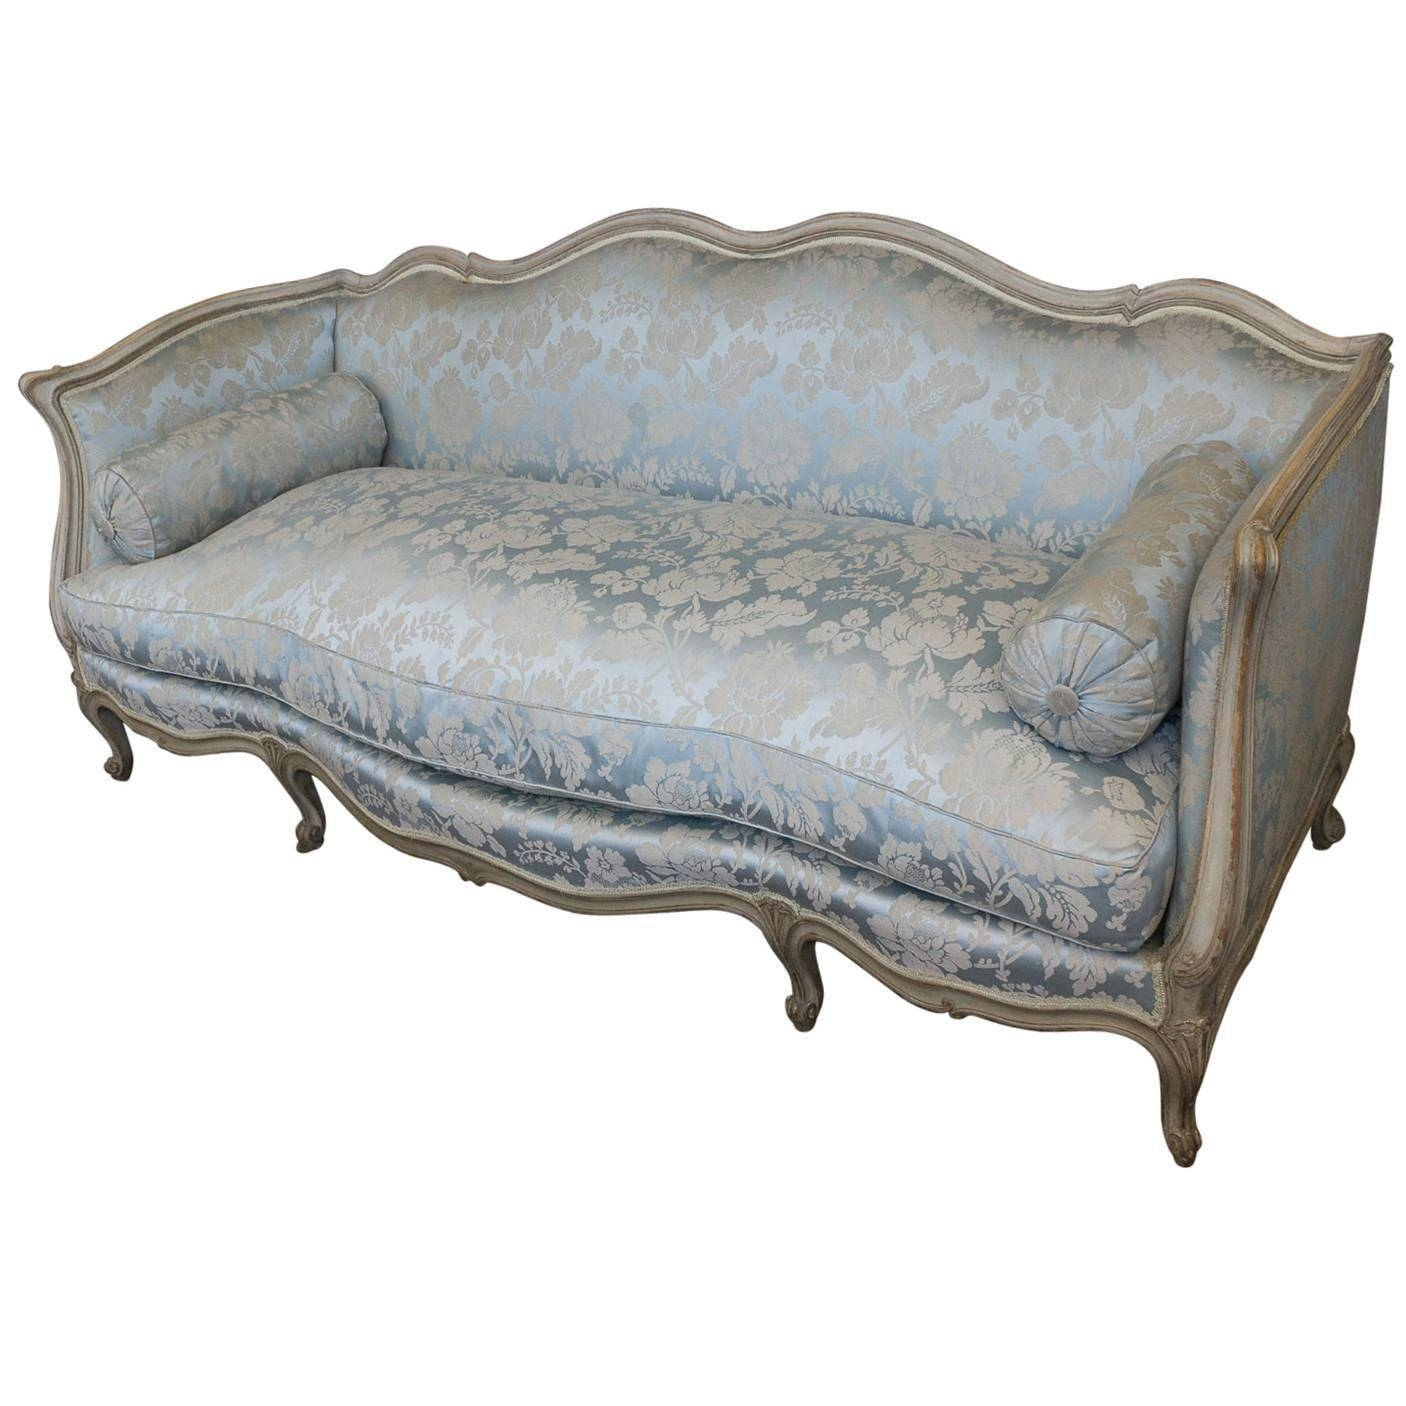 French Louis Xv Style Sofa For Sale At 1Stdibs with French Style Sofa (Image 6 of 25)